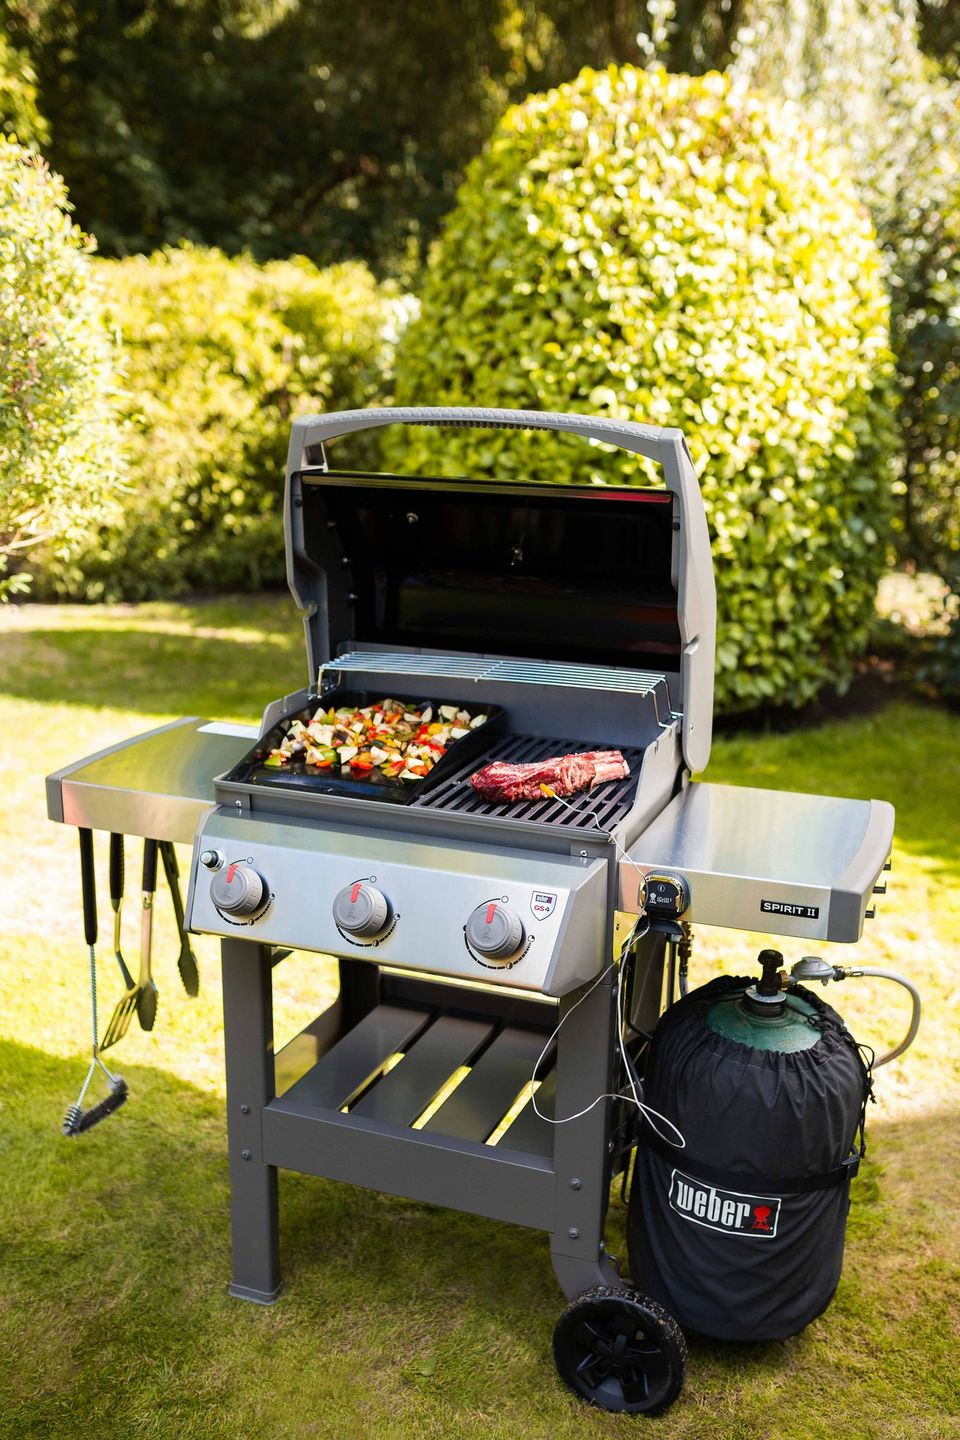 Weber Barbecue Spirit II E 310 Gas Grill mix + plancha